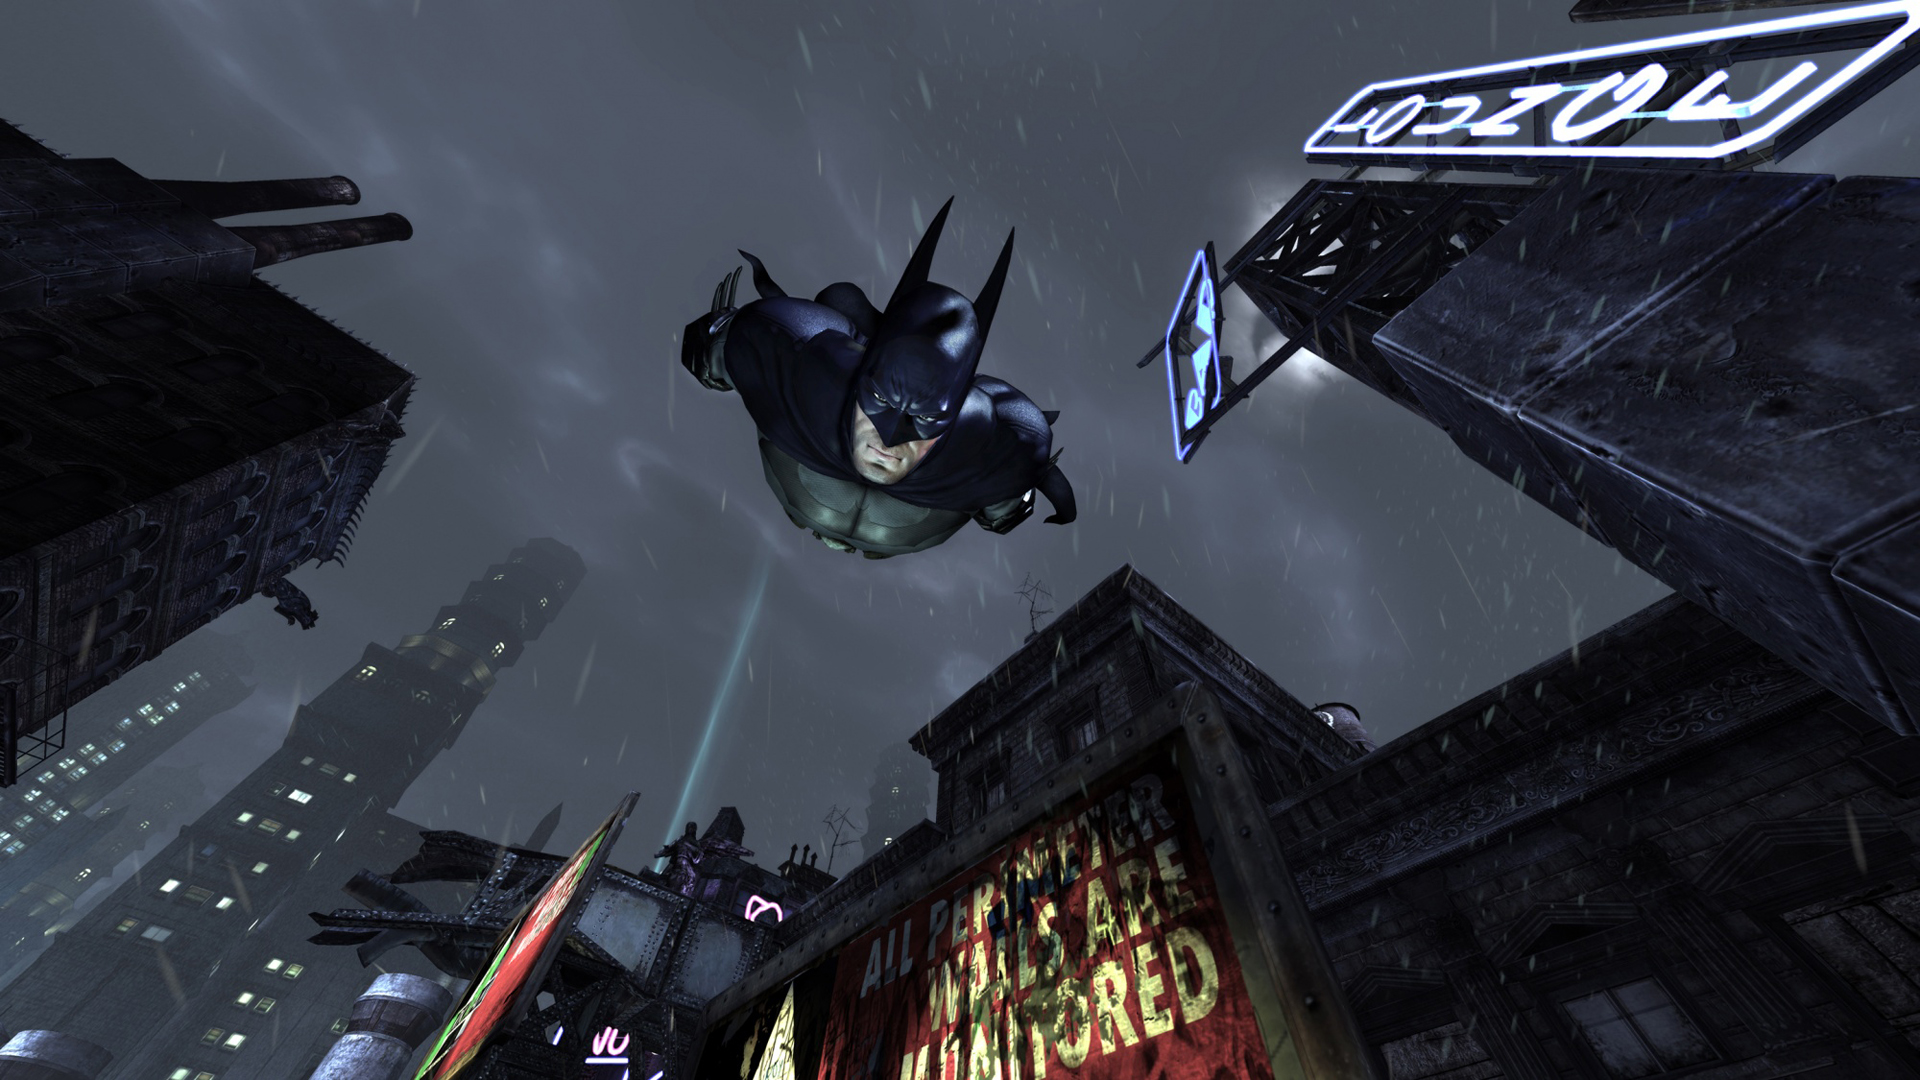 wallpapers city arkham batman wallpaper screen 1920x1080 1920x1080